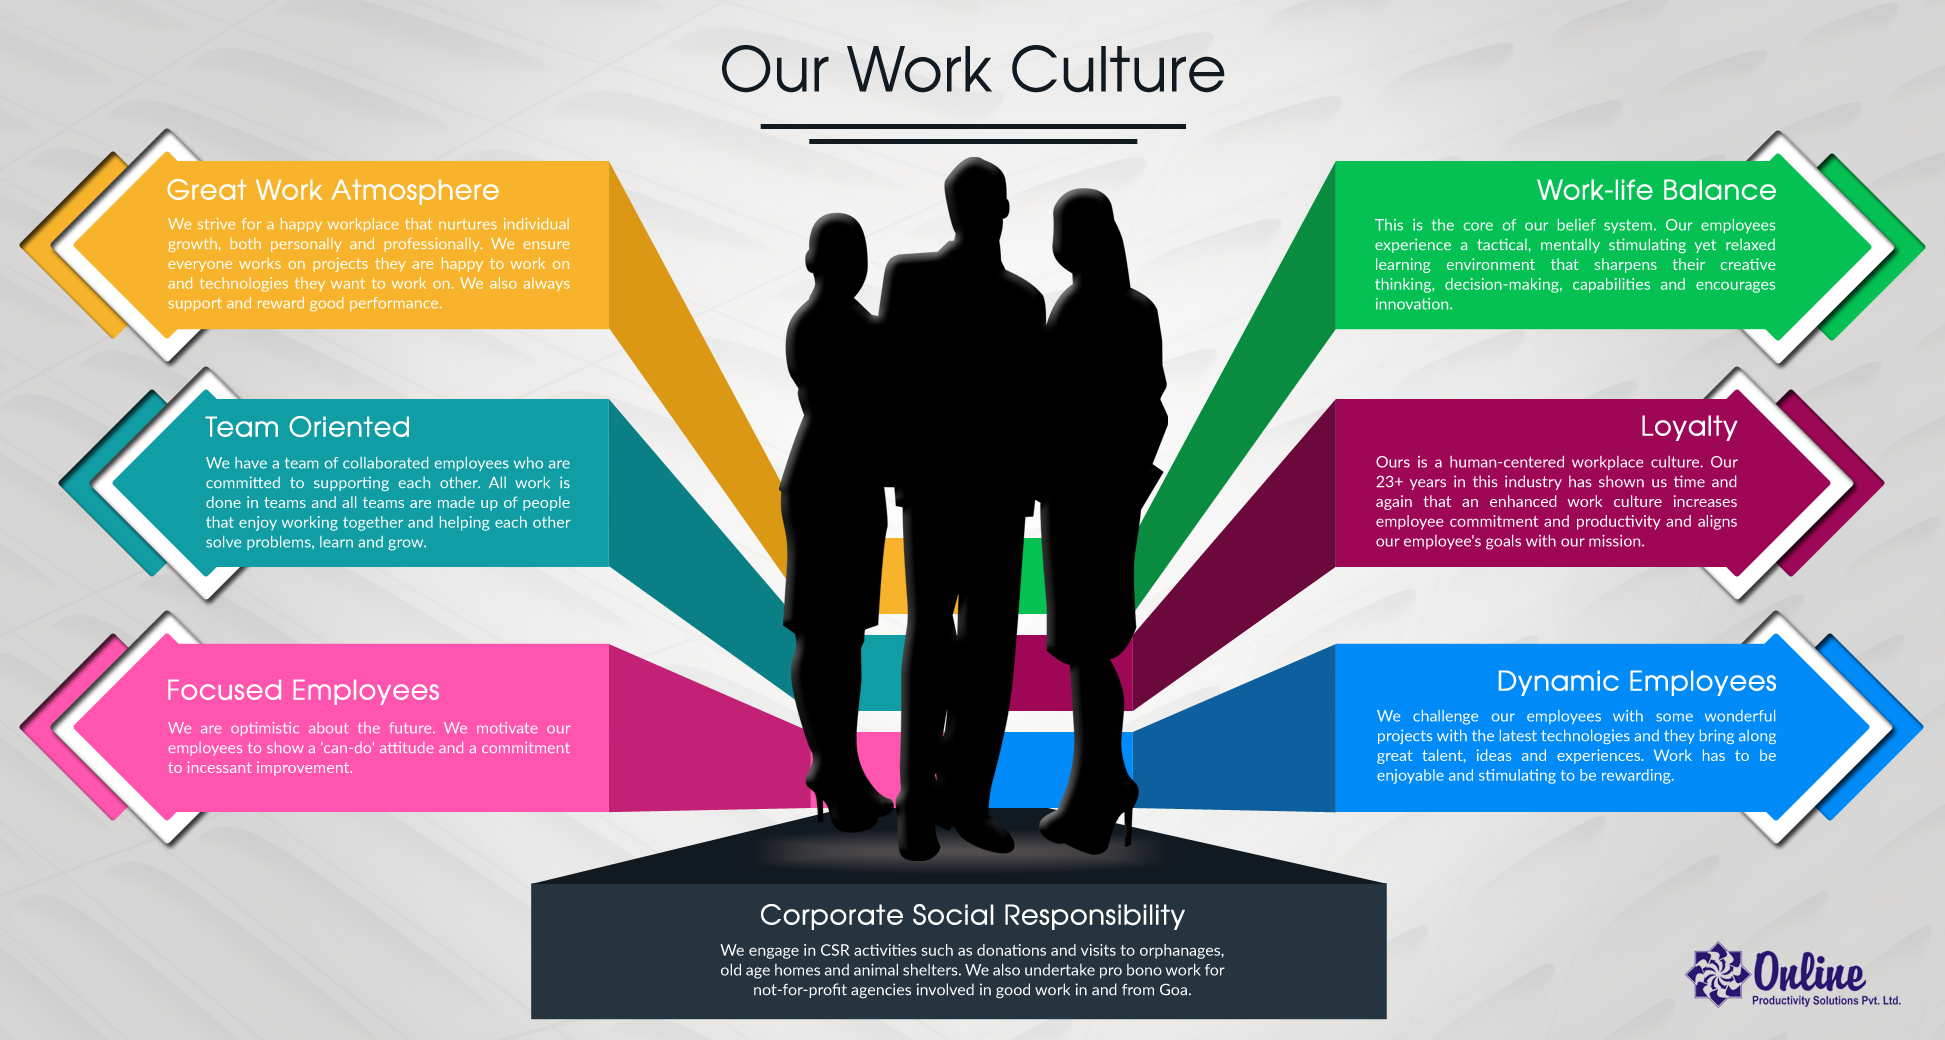 Our Work Culture